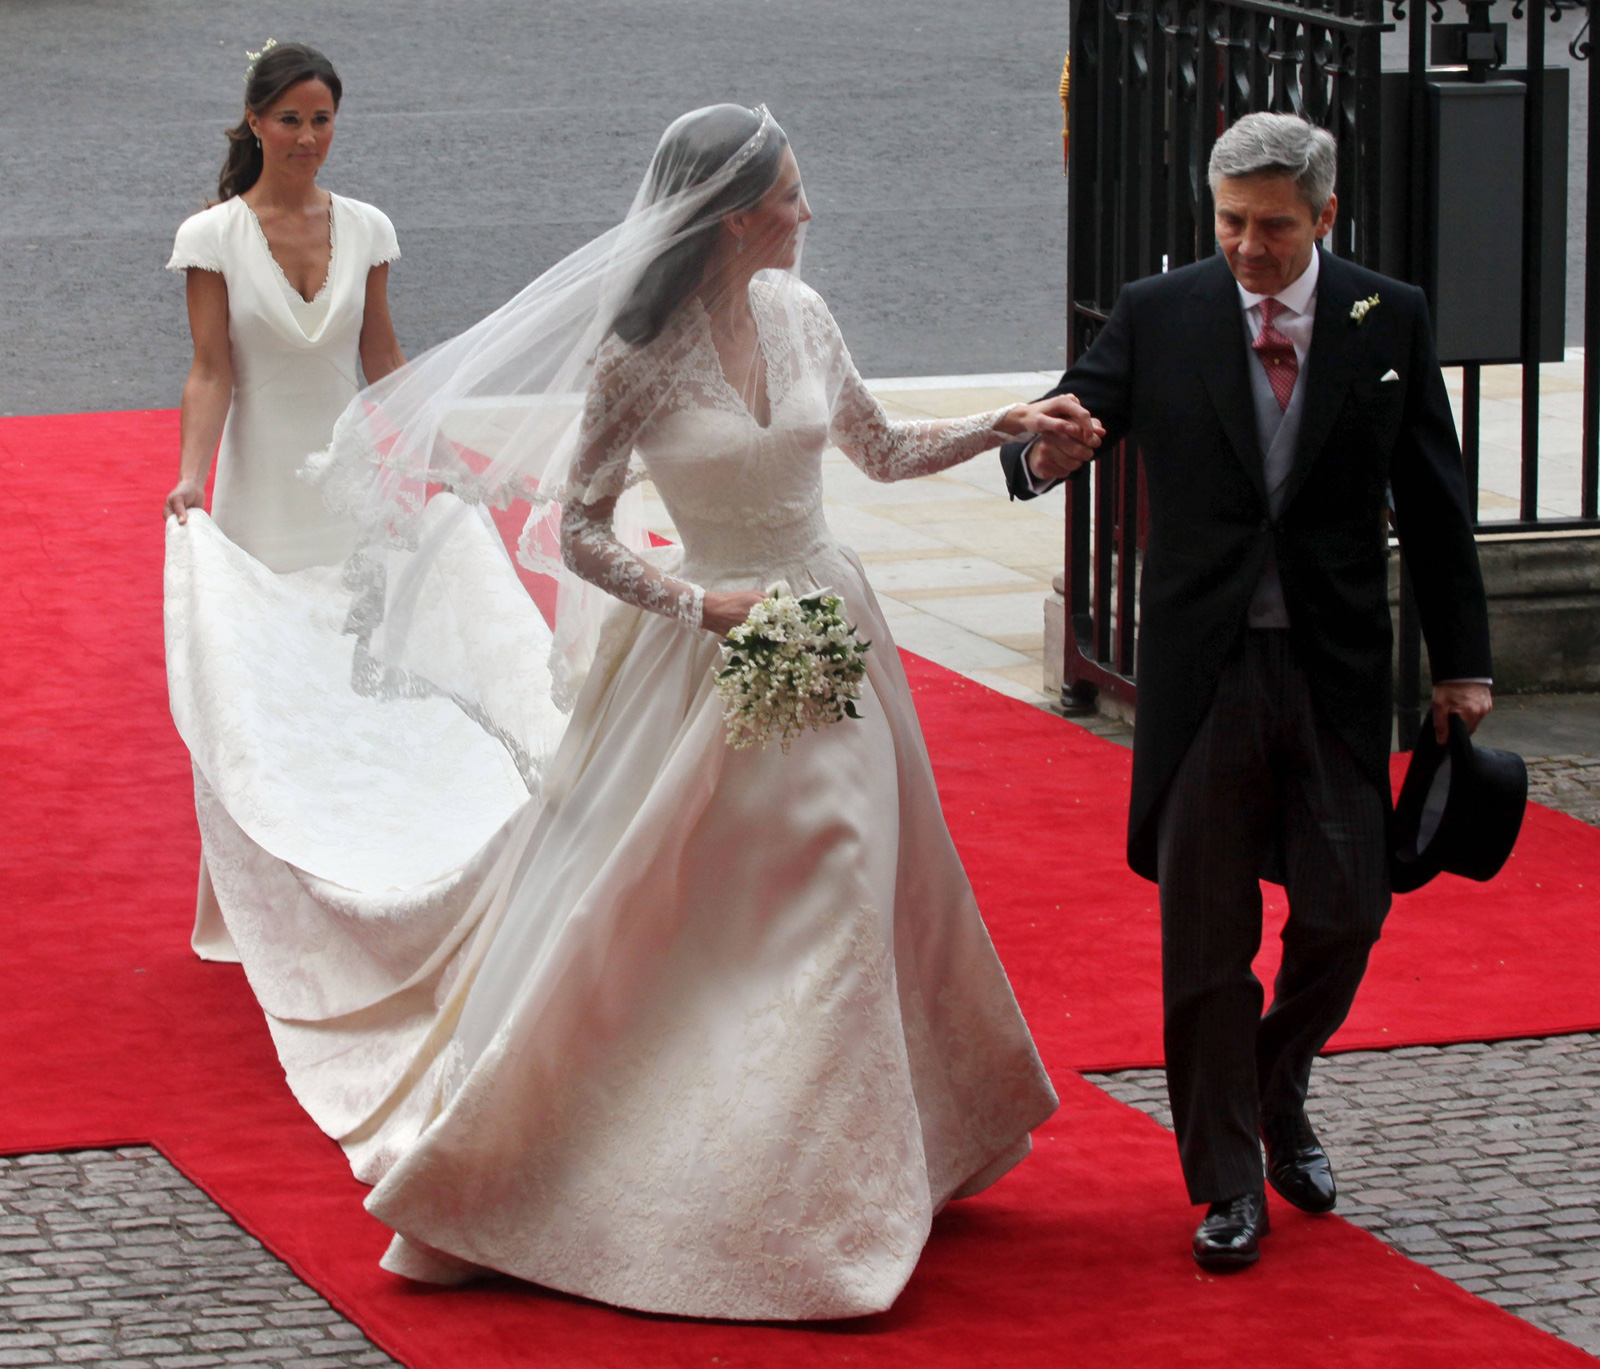 Kate Middletons Bridal Gown To Go On Public Display